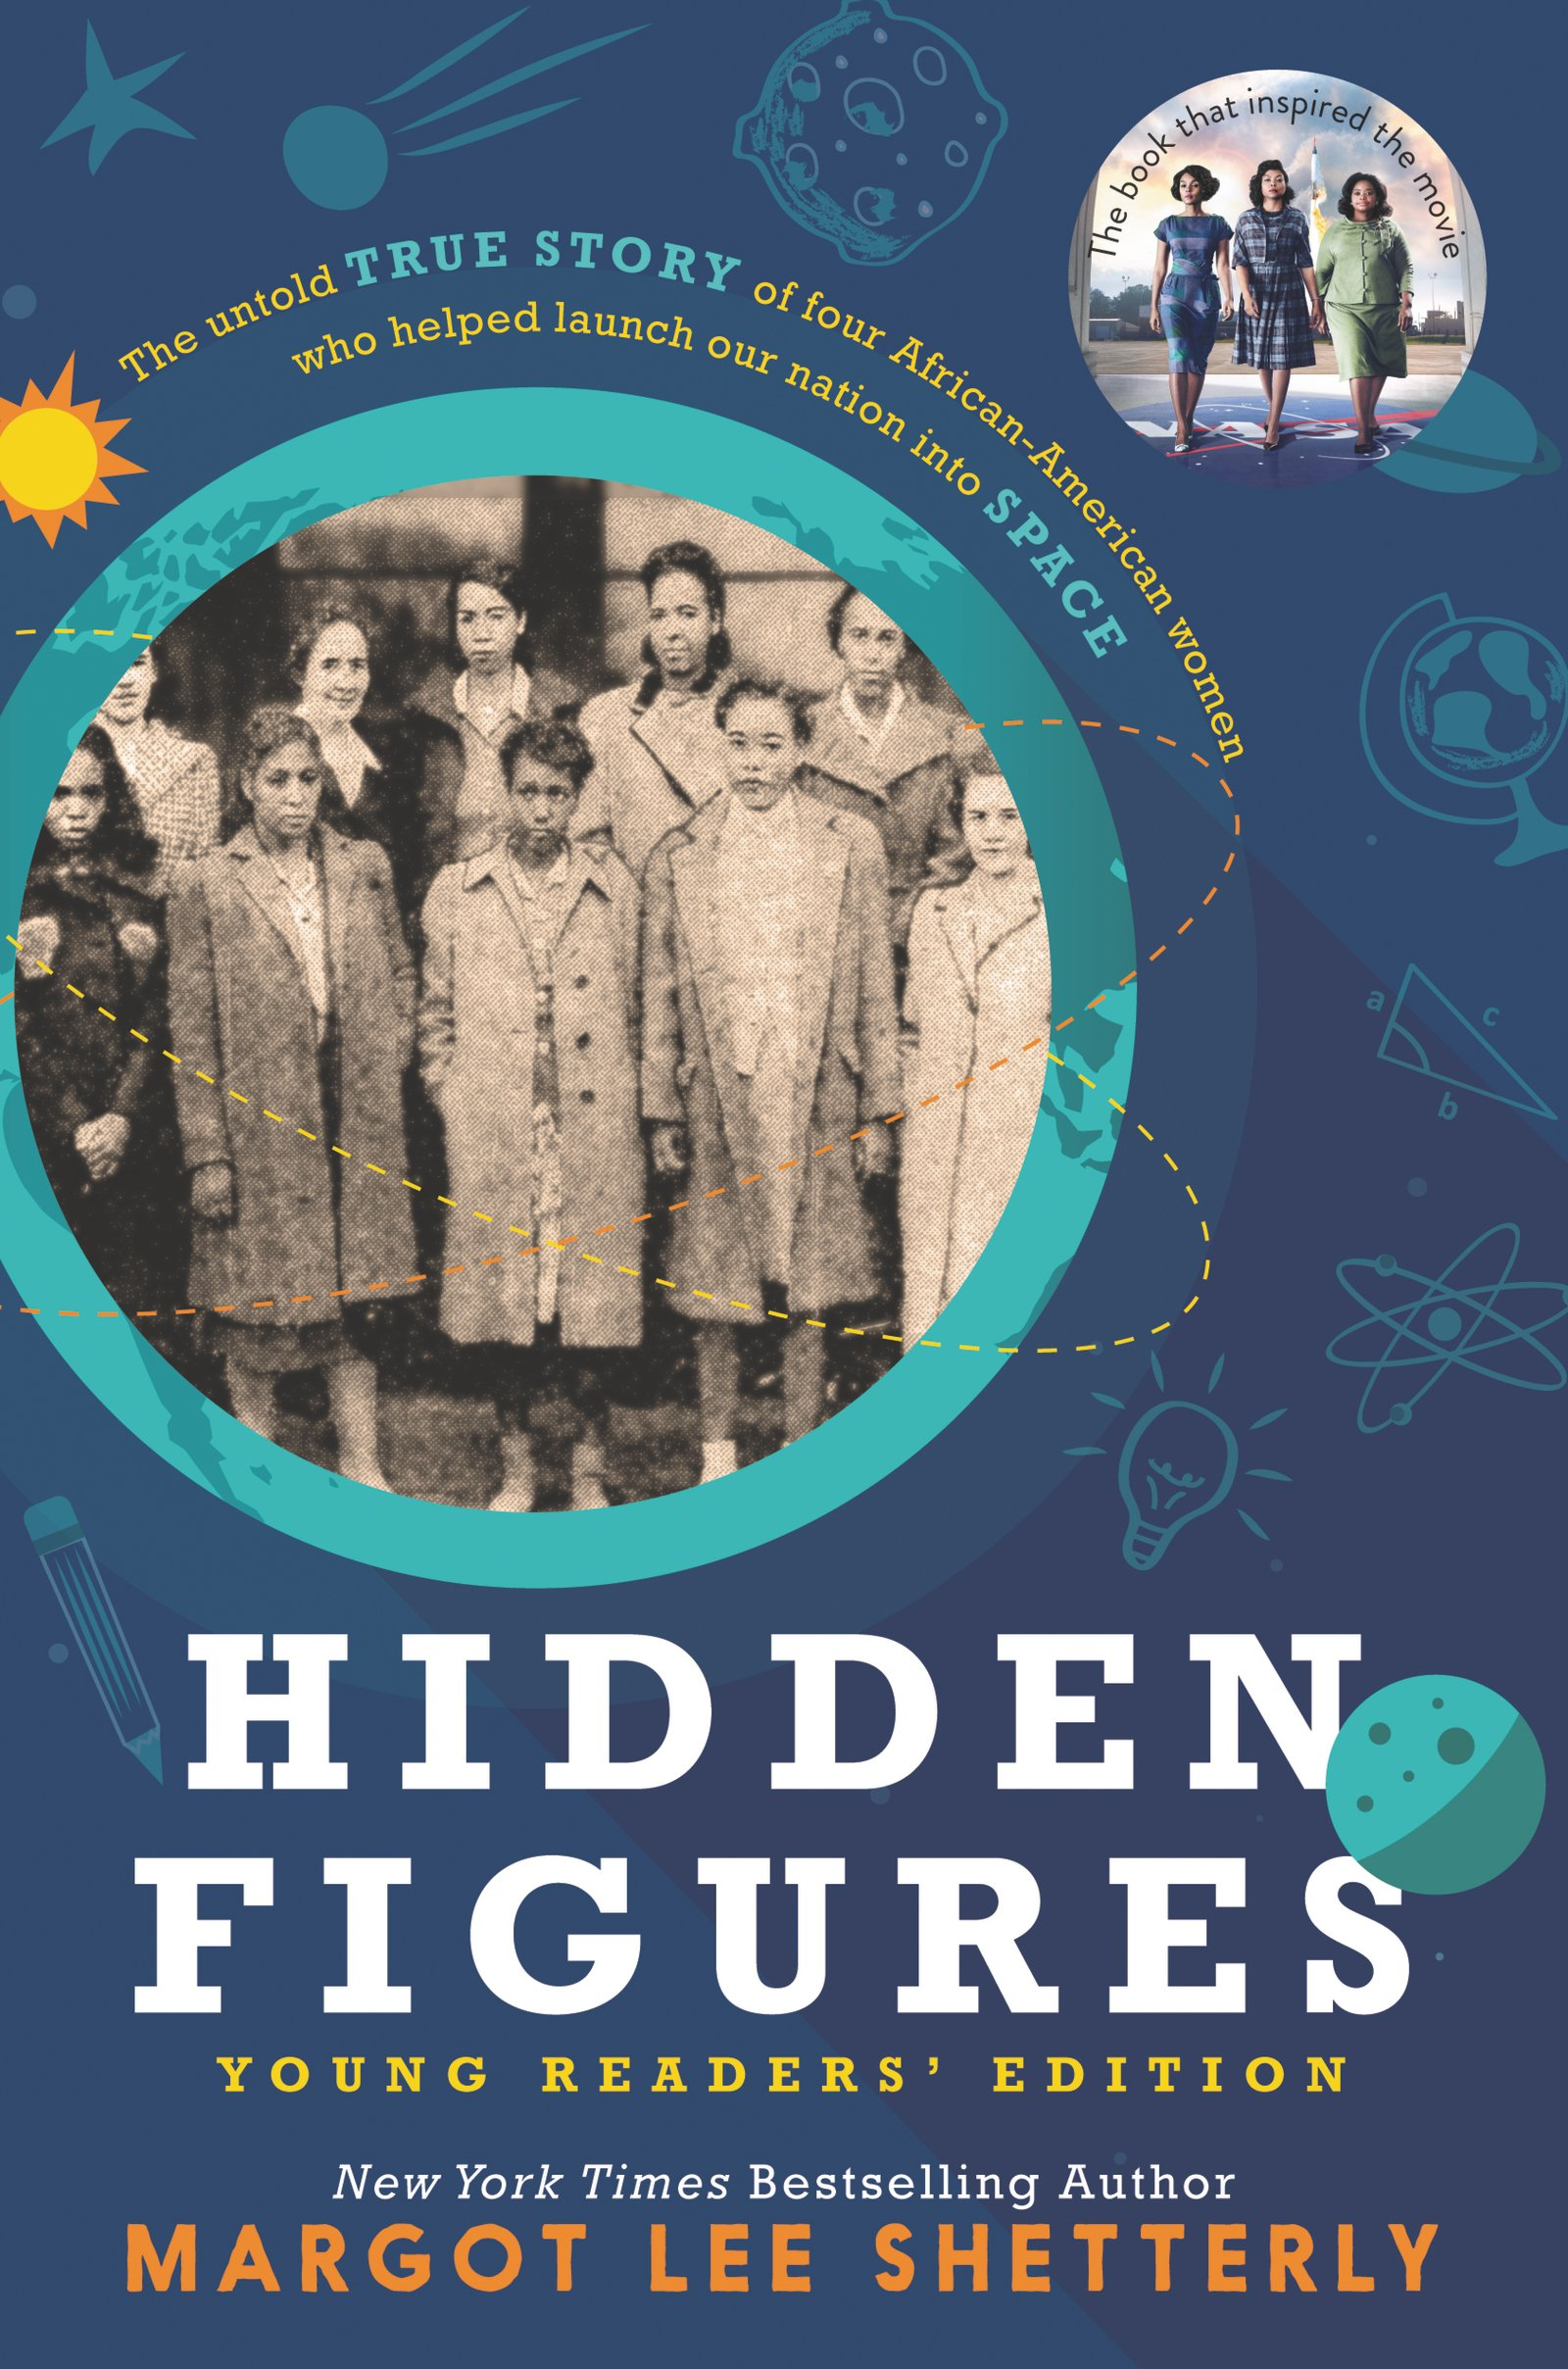 Hidden Figures, Young Readers' Edition - Margot Lee Shetterly